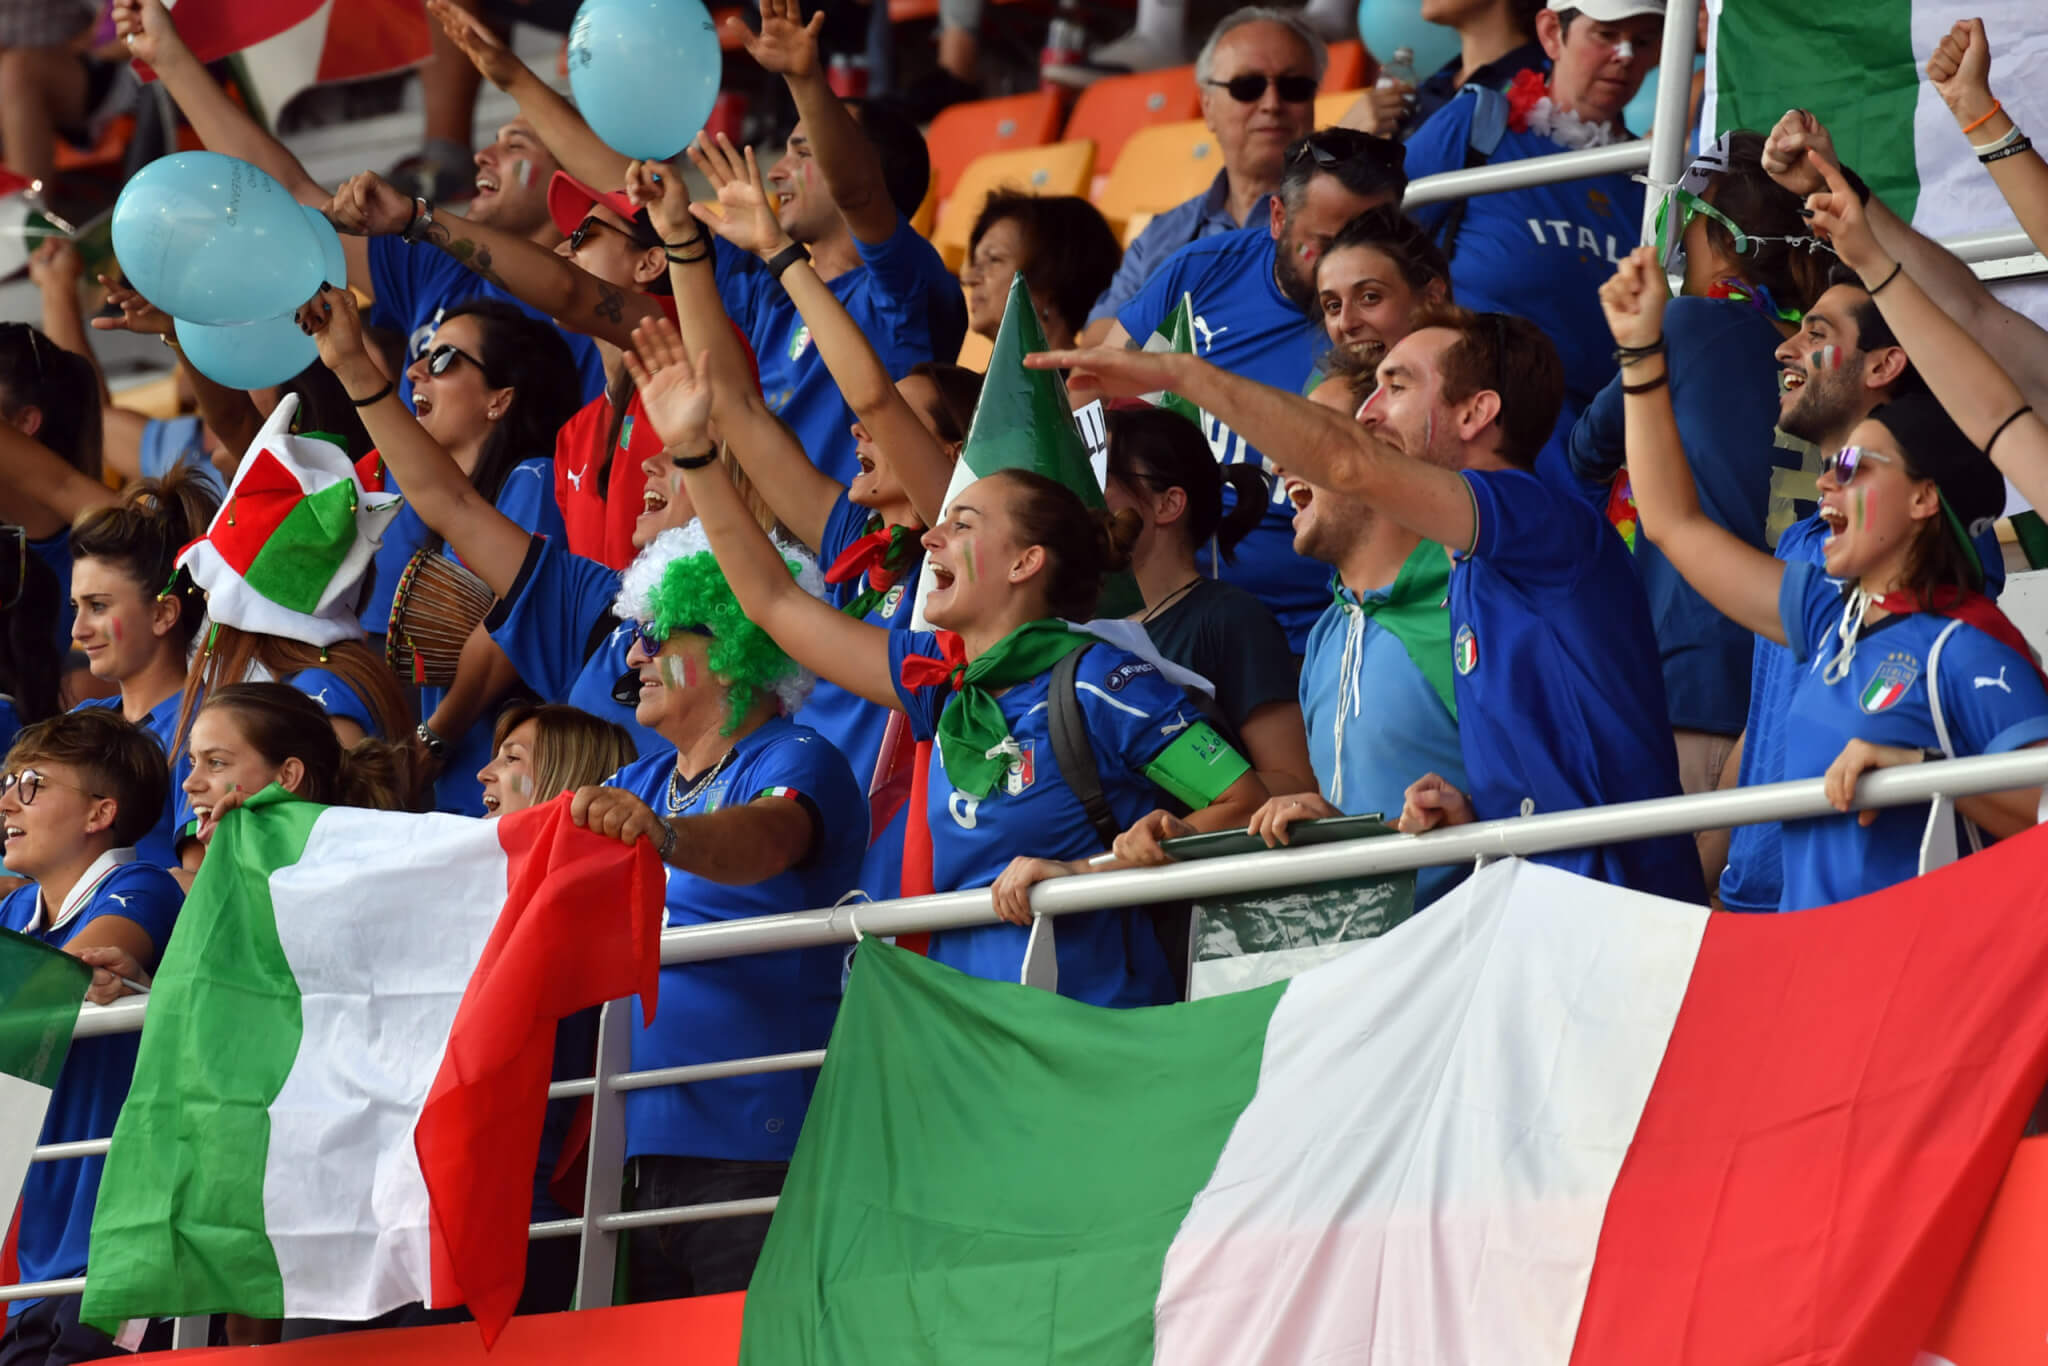 italy fans scaled